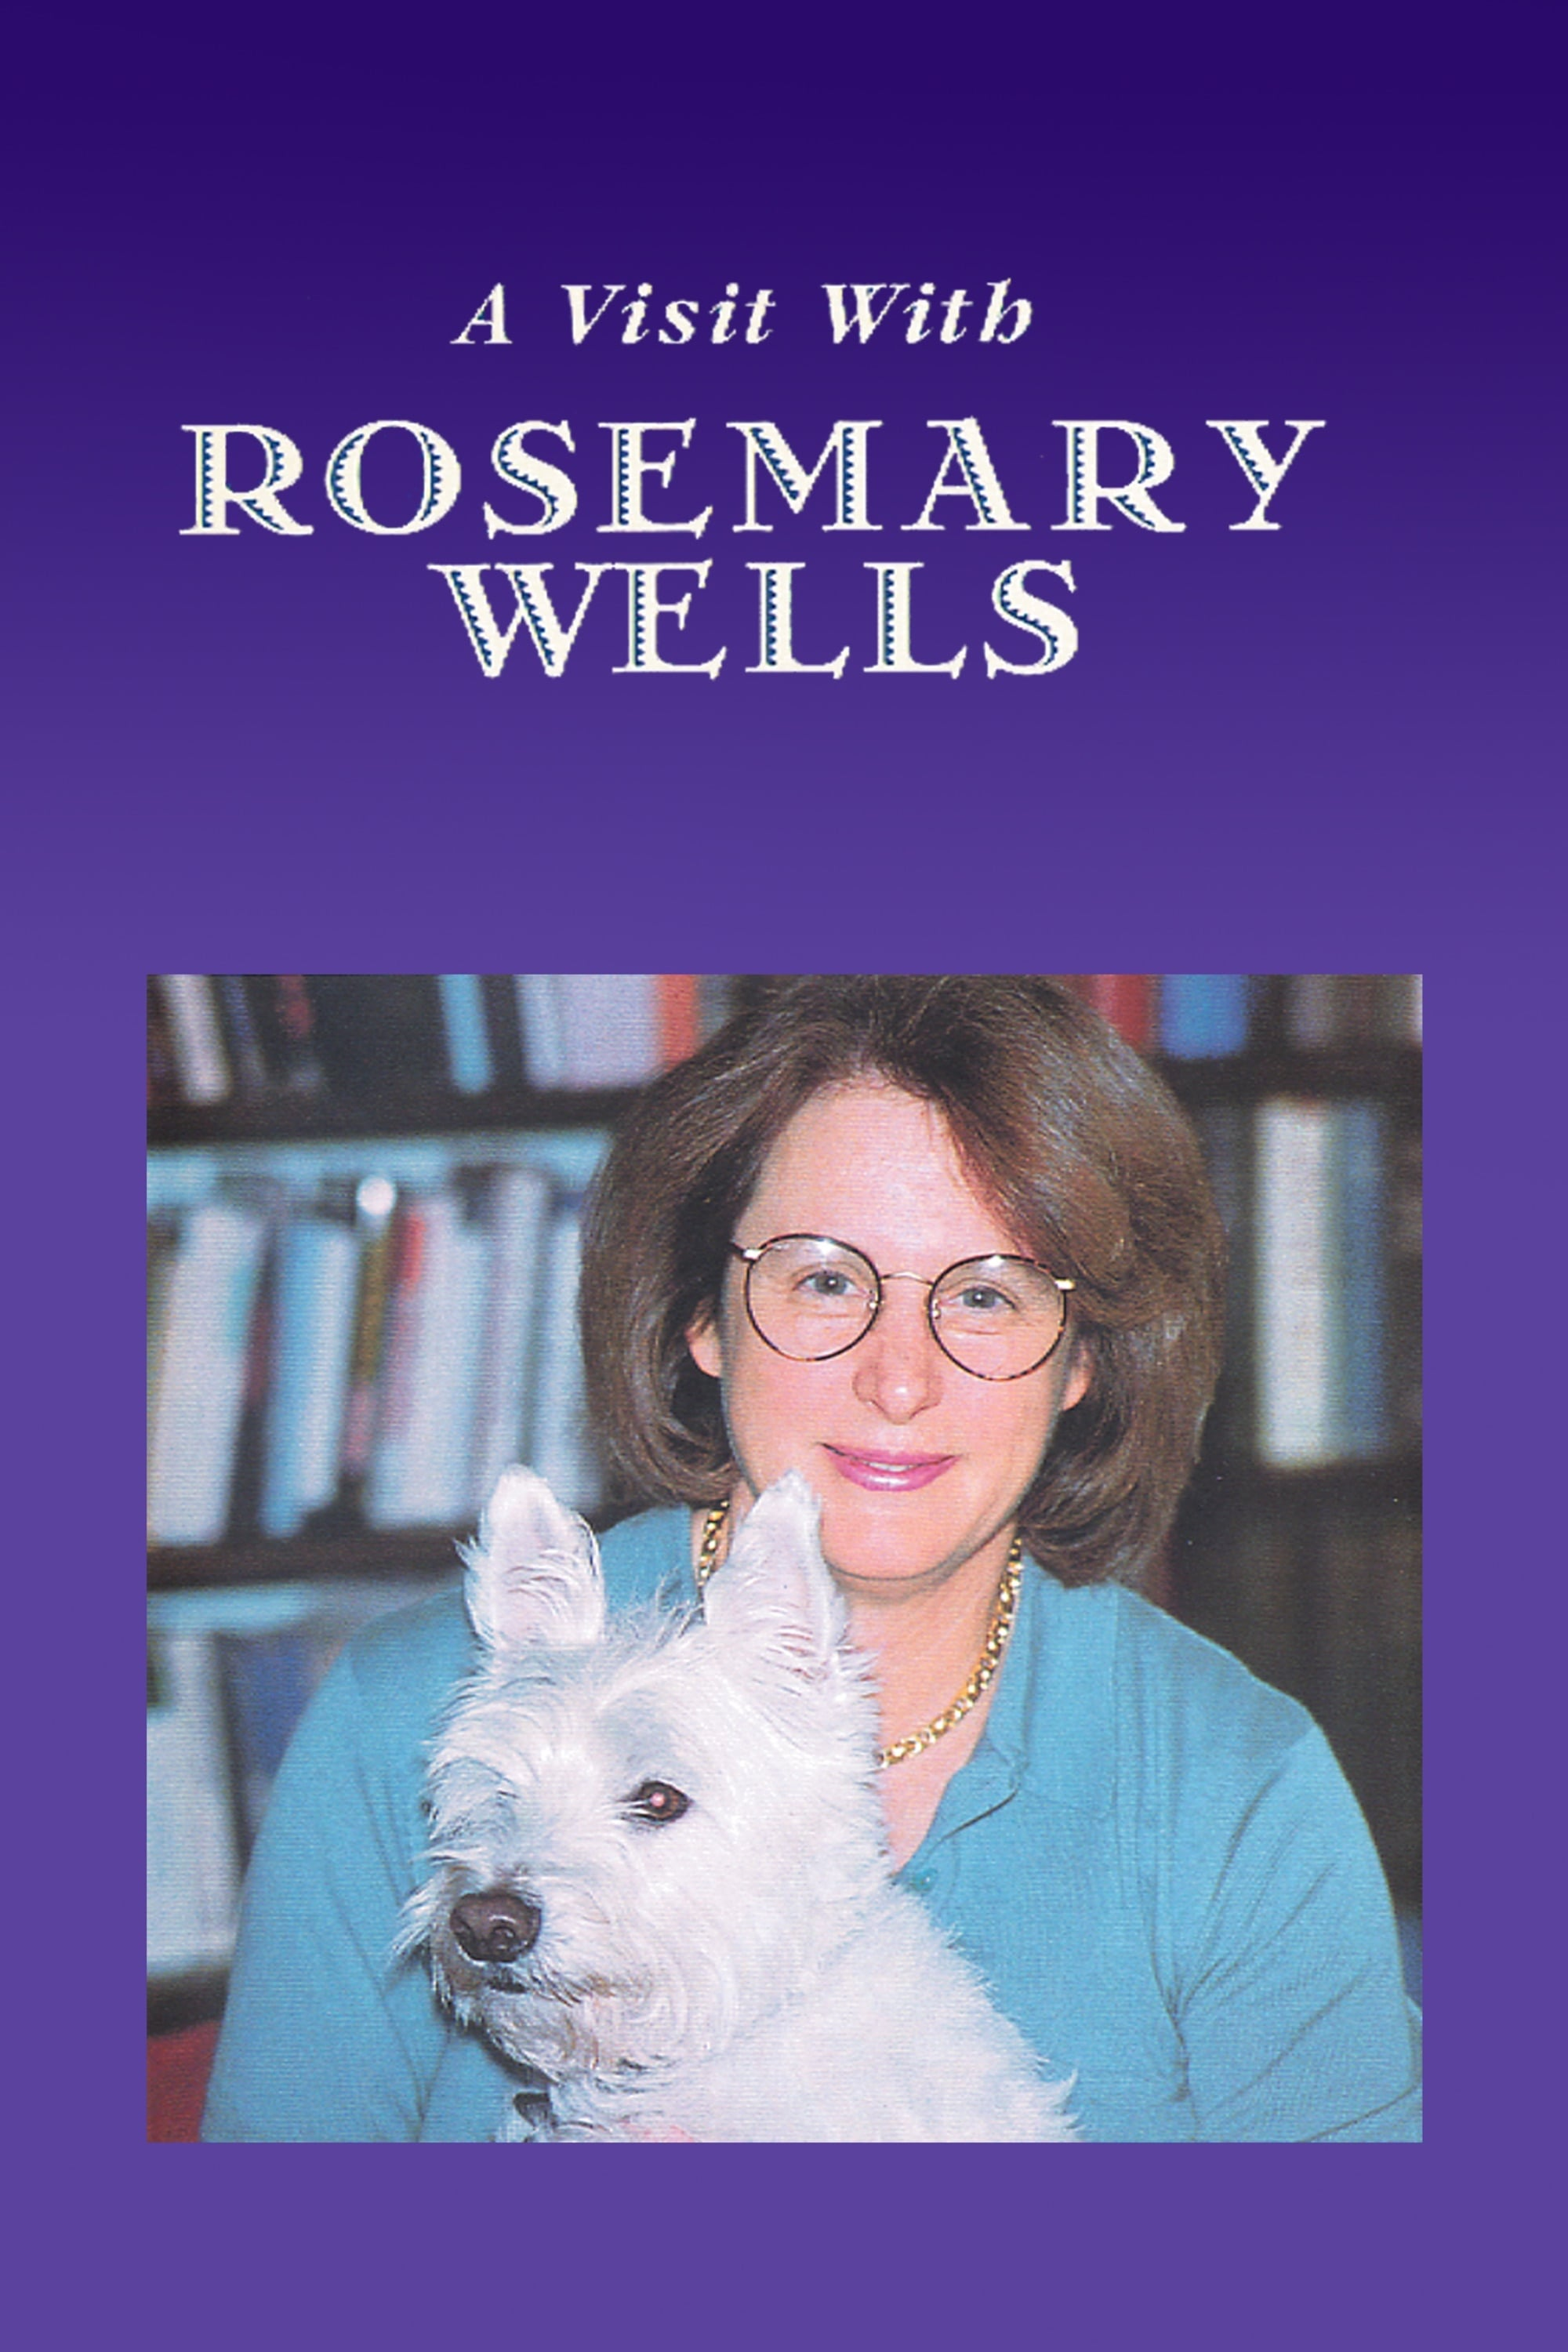 A Visit with Rosemary Wells on FREECABLE TV